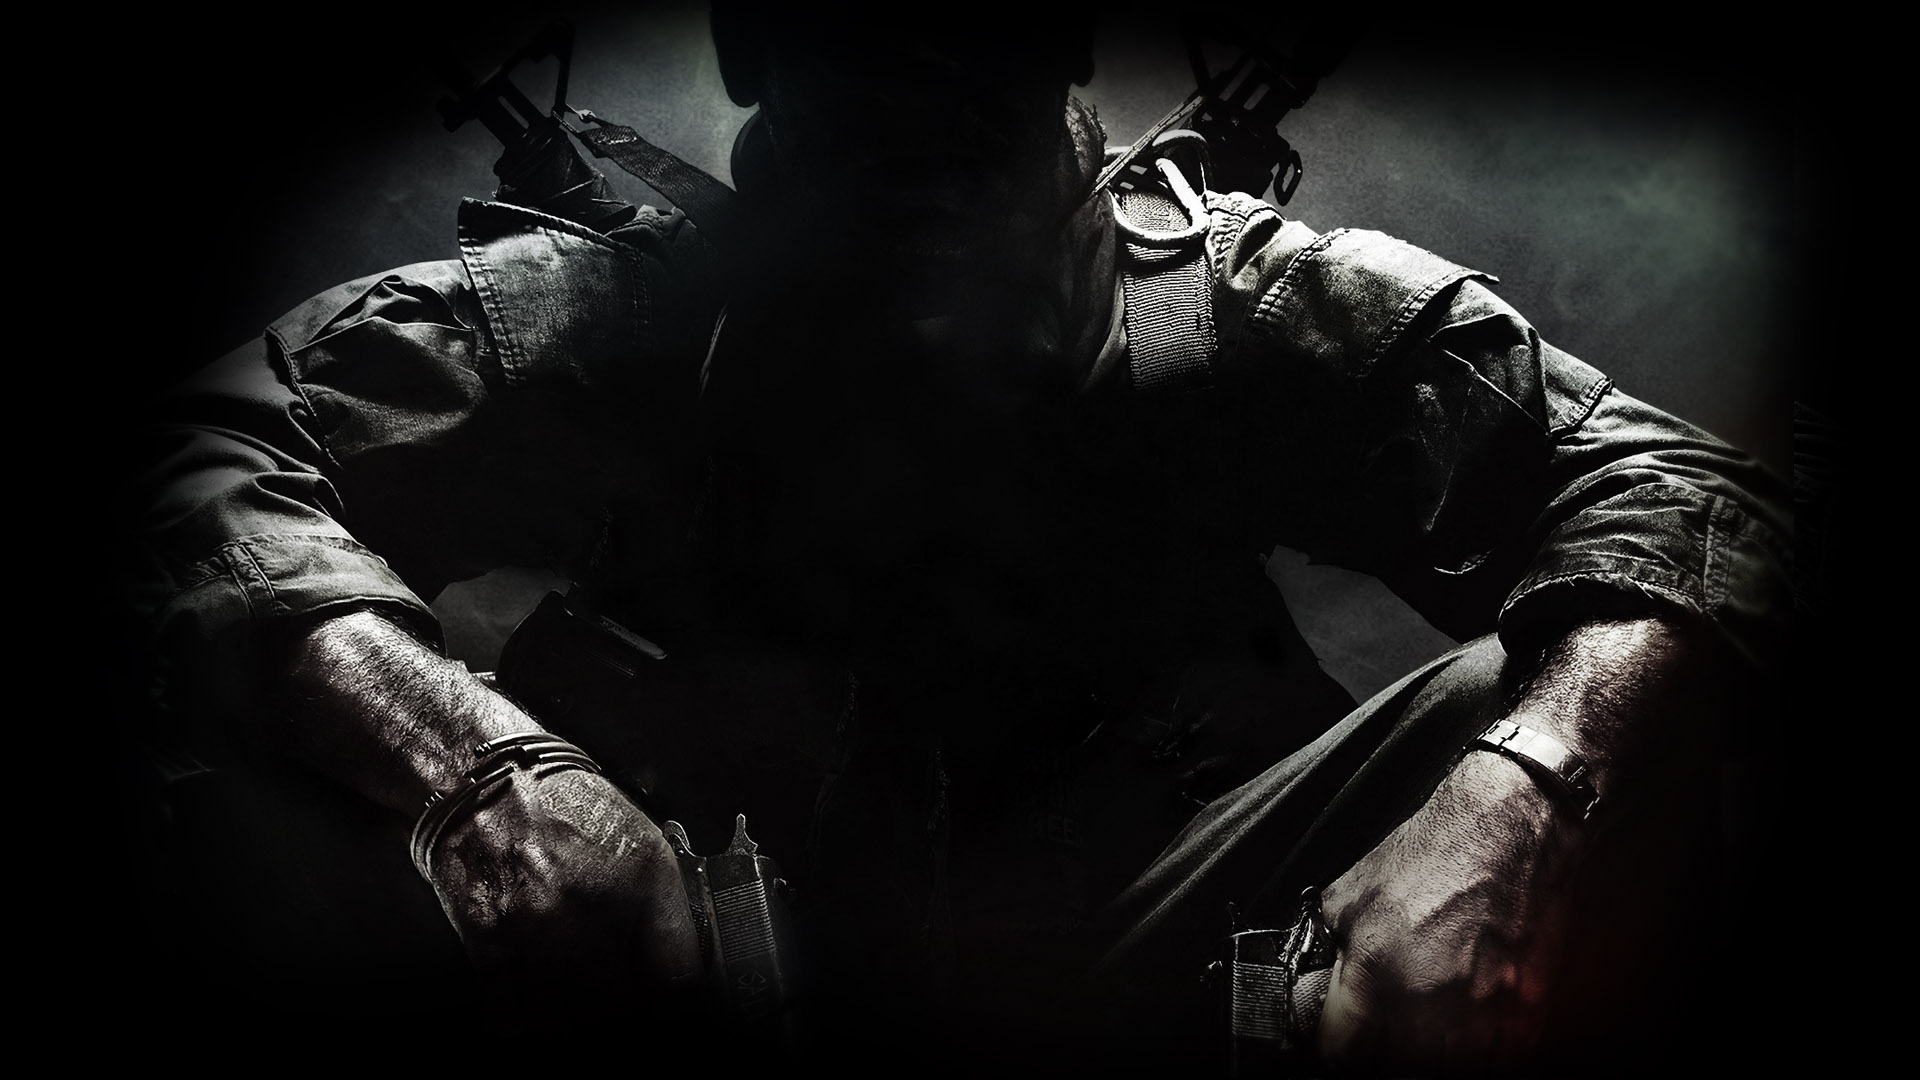 Call Of Duty HD Wallpaper IPhone 1920x1080